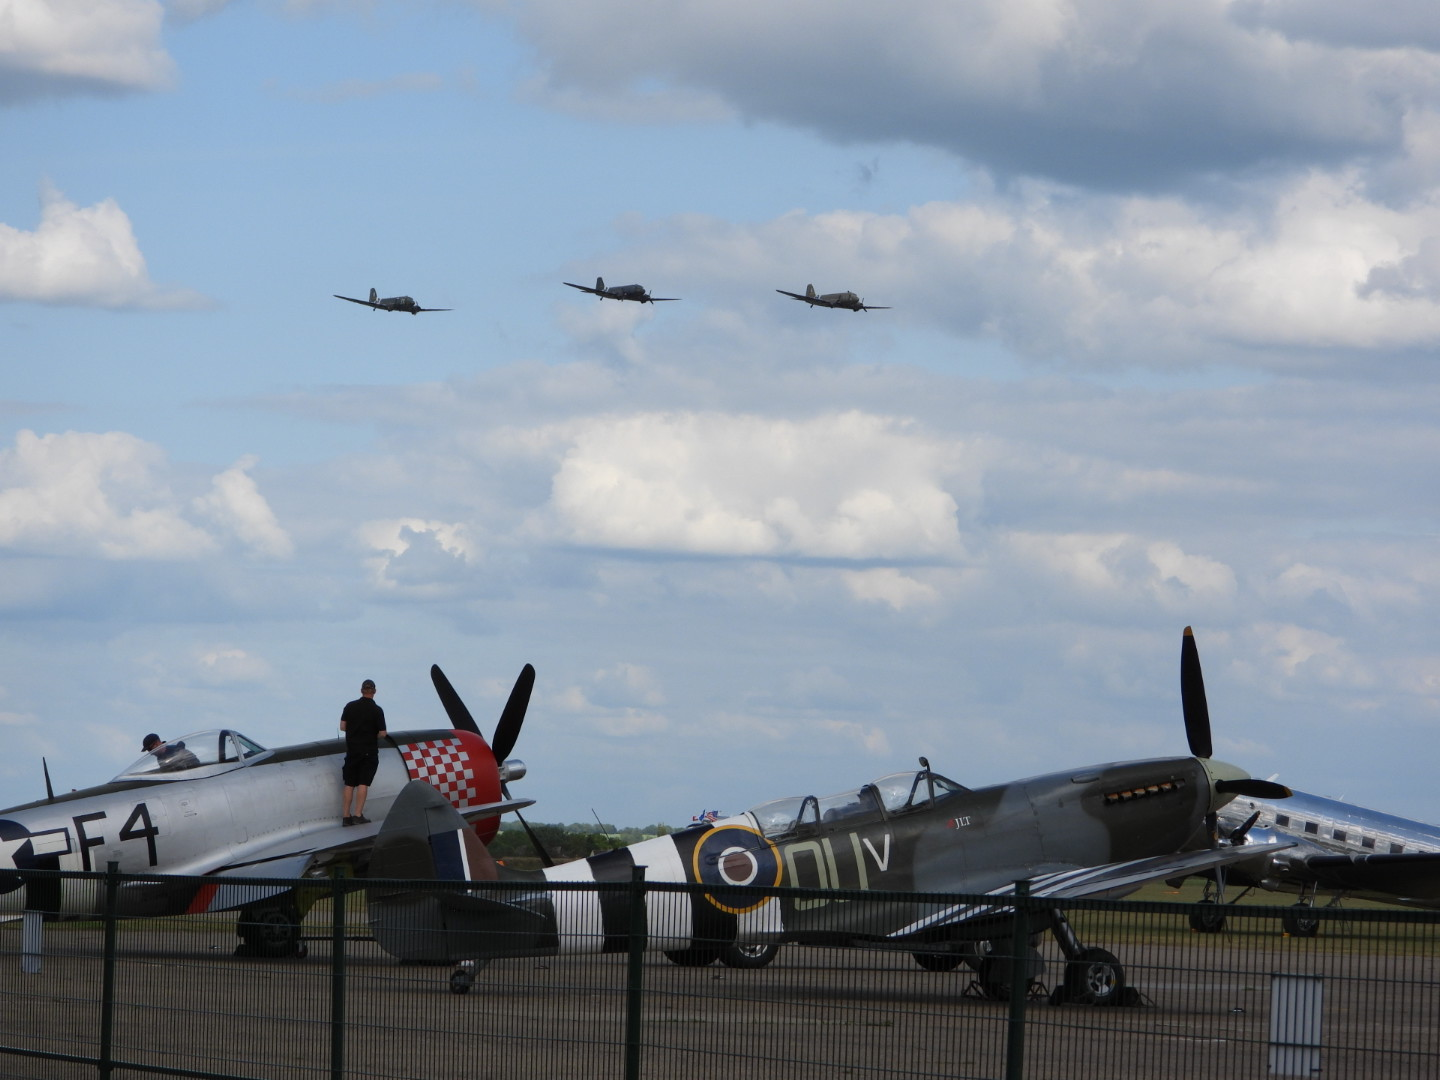 Formation Flight over Duxford